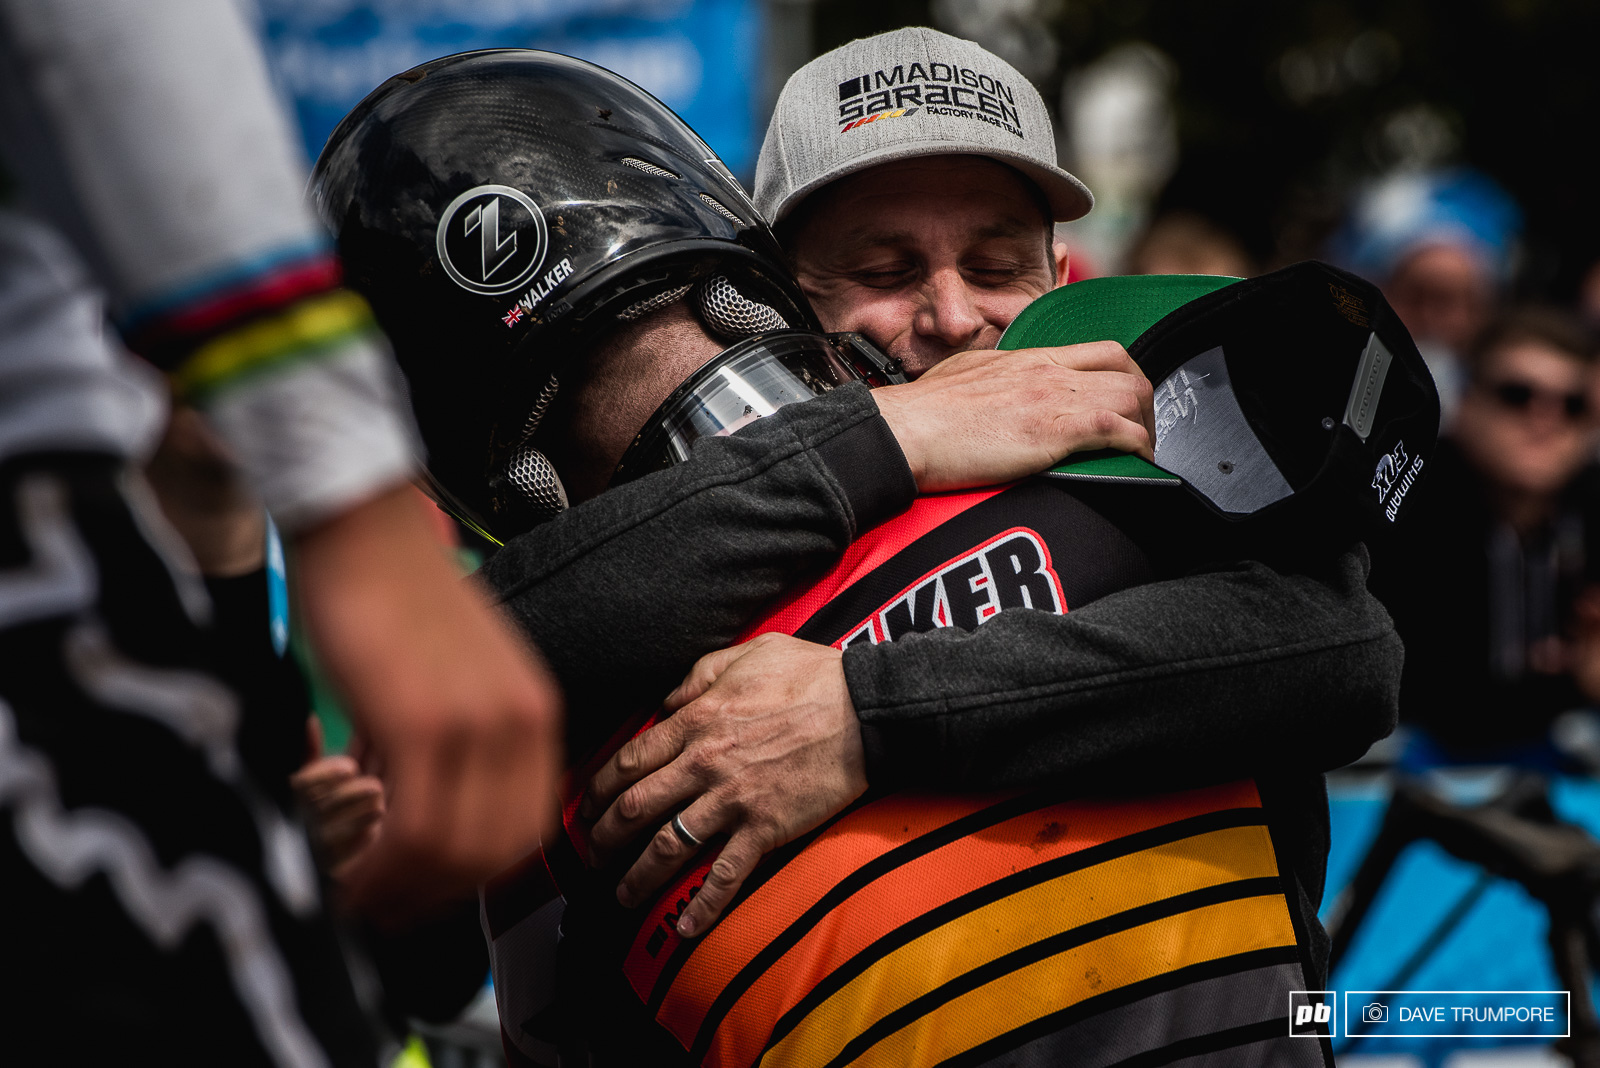 Team Manger Will Longden celebrates with Matt Walker at the finish. Matt would give Great Britain their only victory this weekend on home soil.